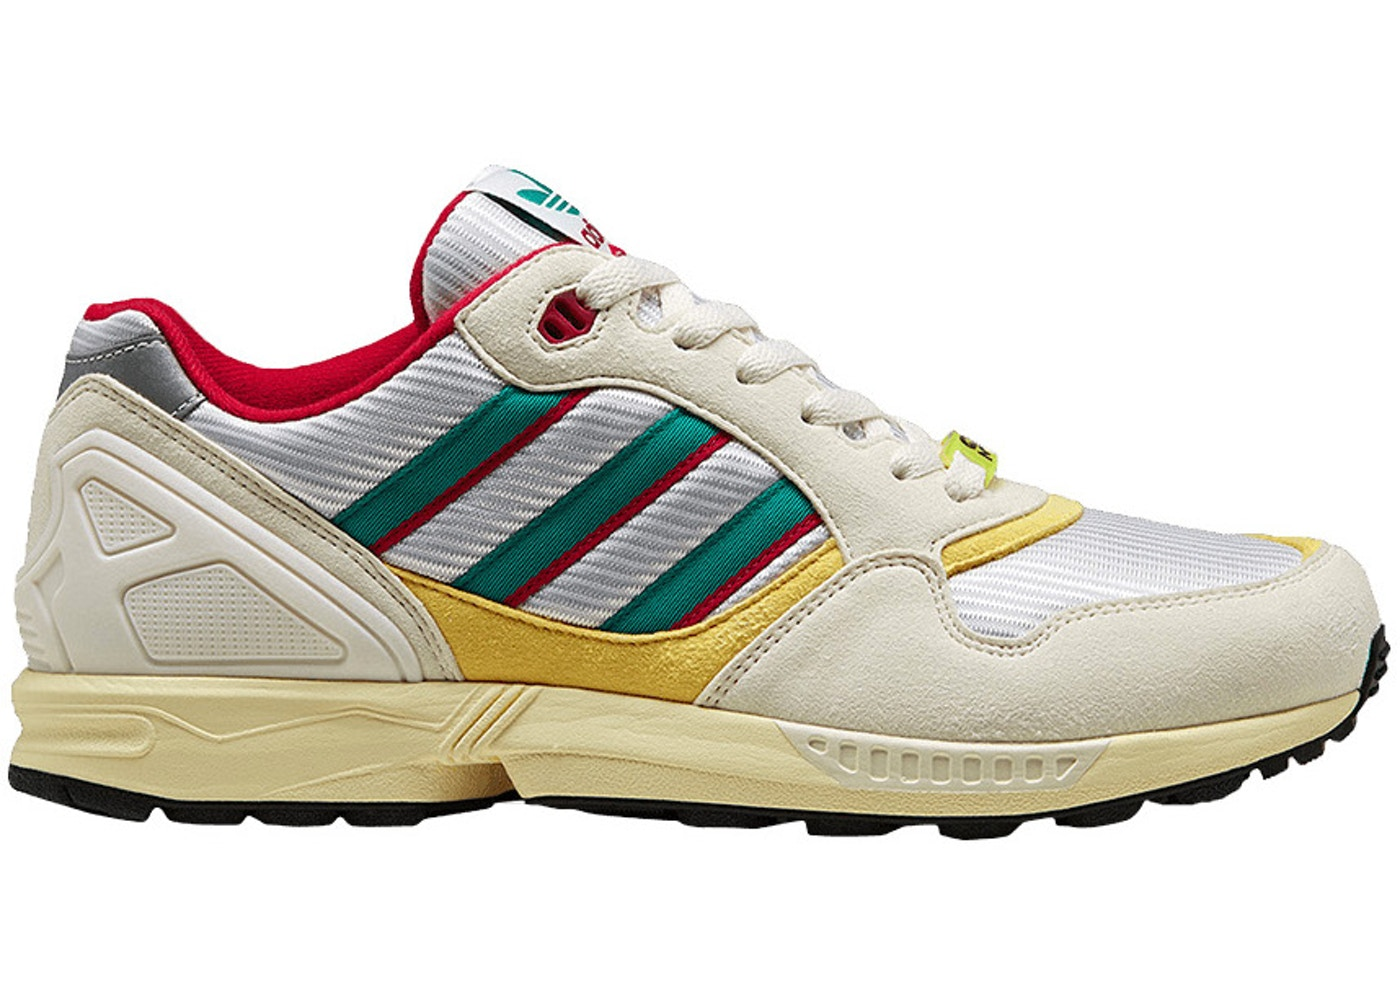 メンズ靴, スニーカー  ADIDAS ZX 6000 30 YEARS OF TORSION CREME RED YELLOW